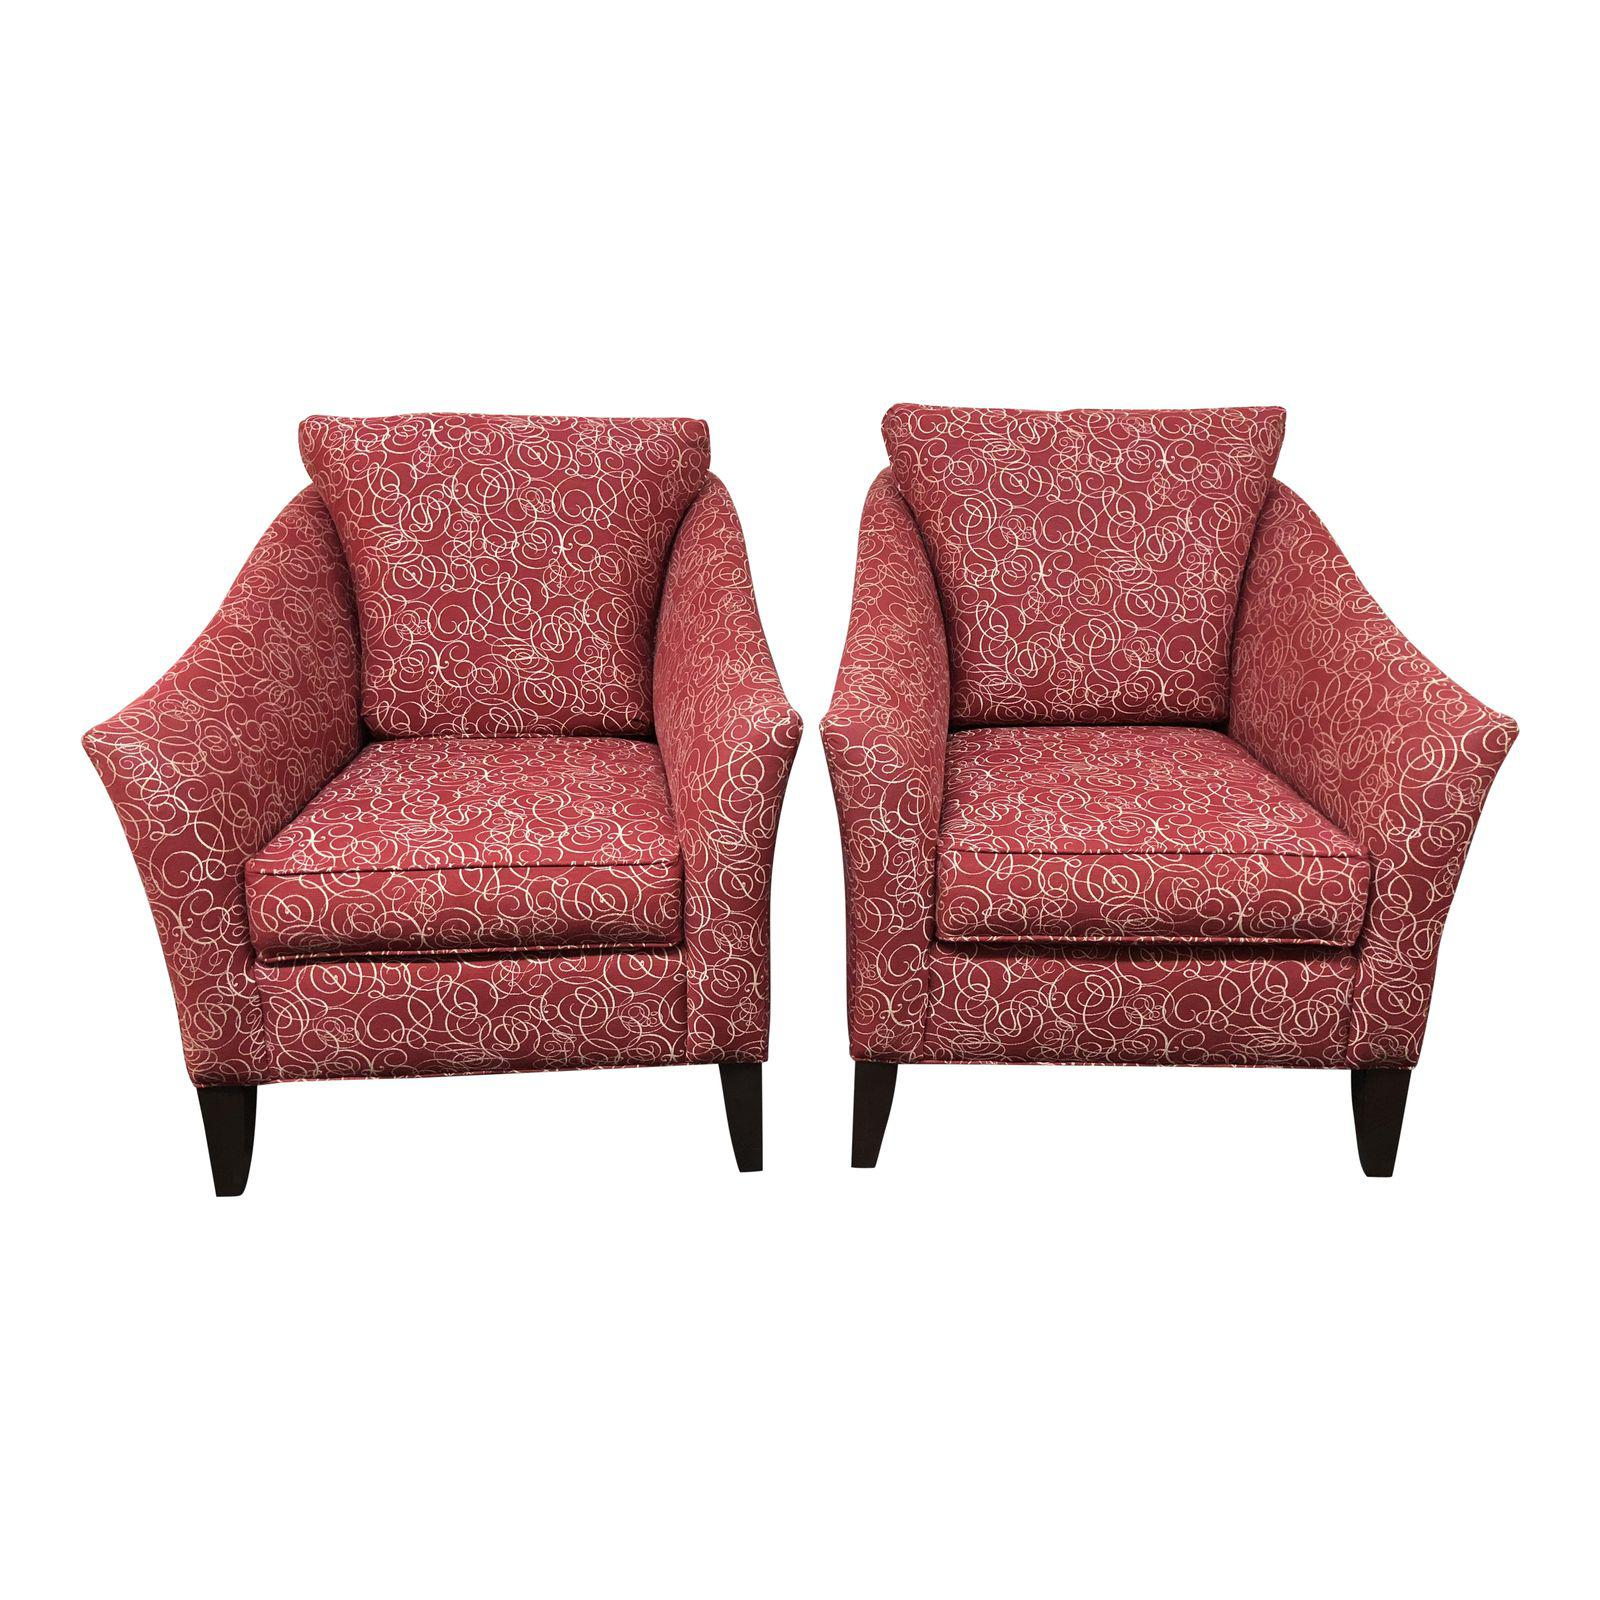 Ethan Allen Gibson Accent Chairs – A Pair  Design Plus Gallery